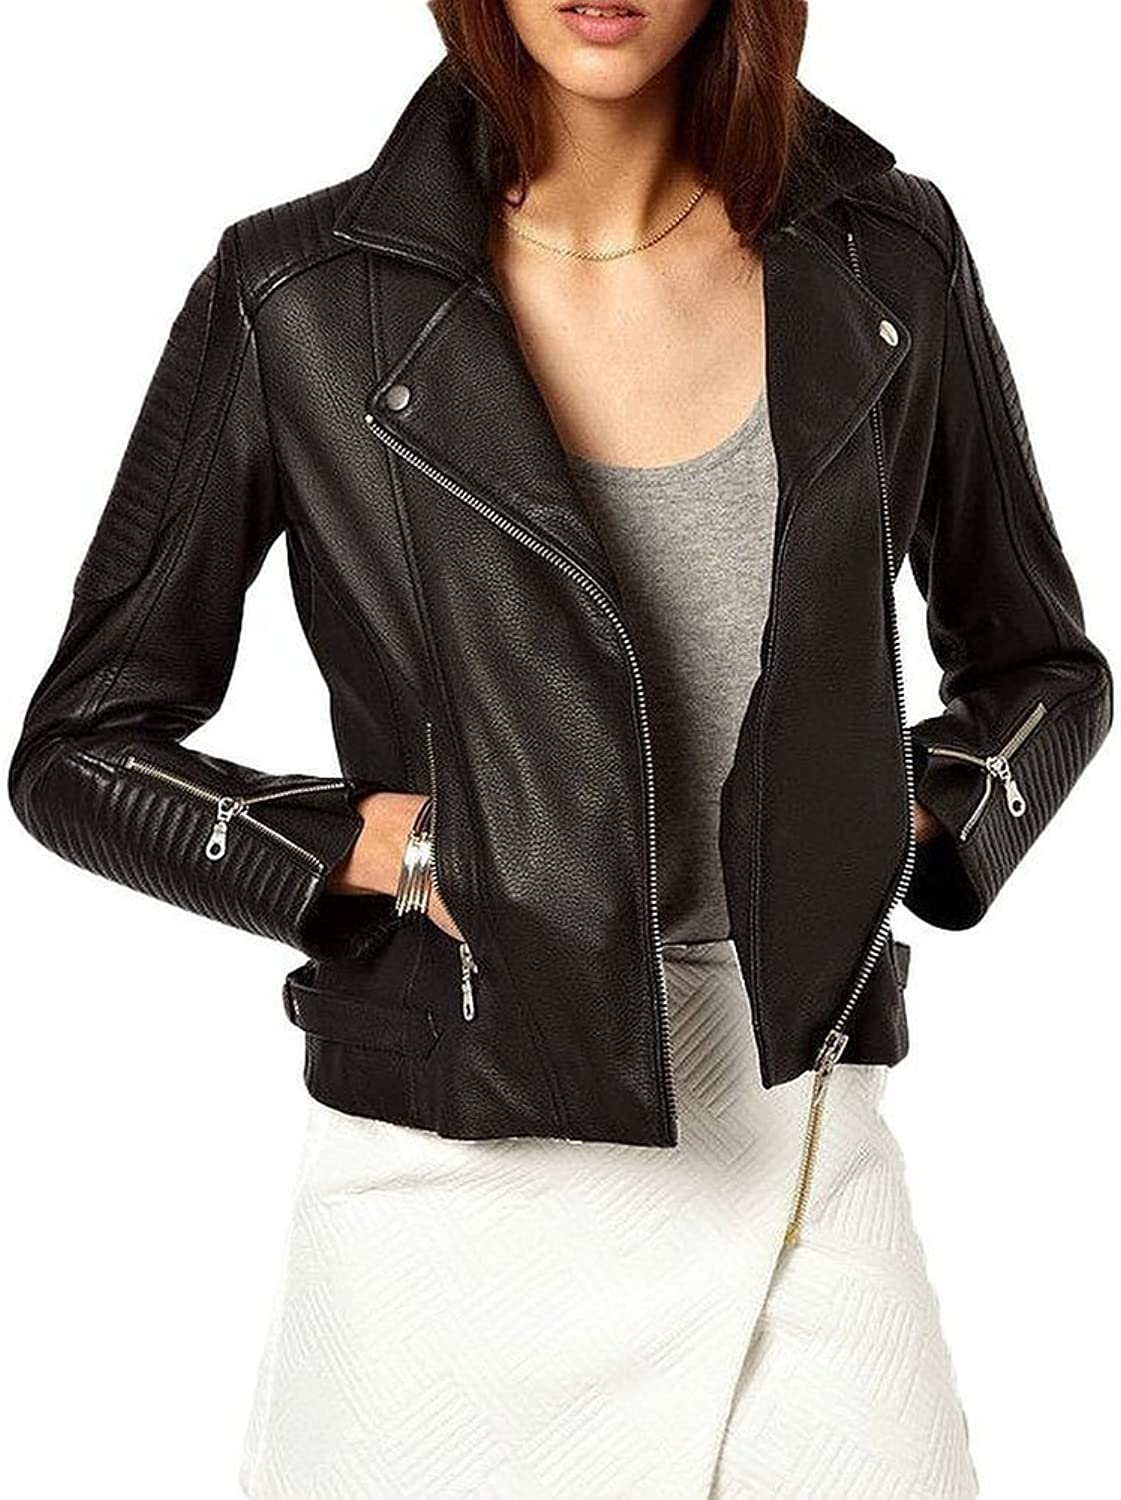 New Motorcycle Designer Styles Womens Lambskin Leather Jacket LTW412